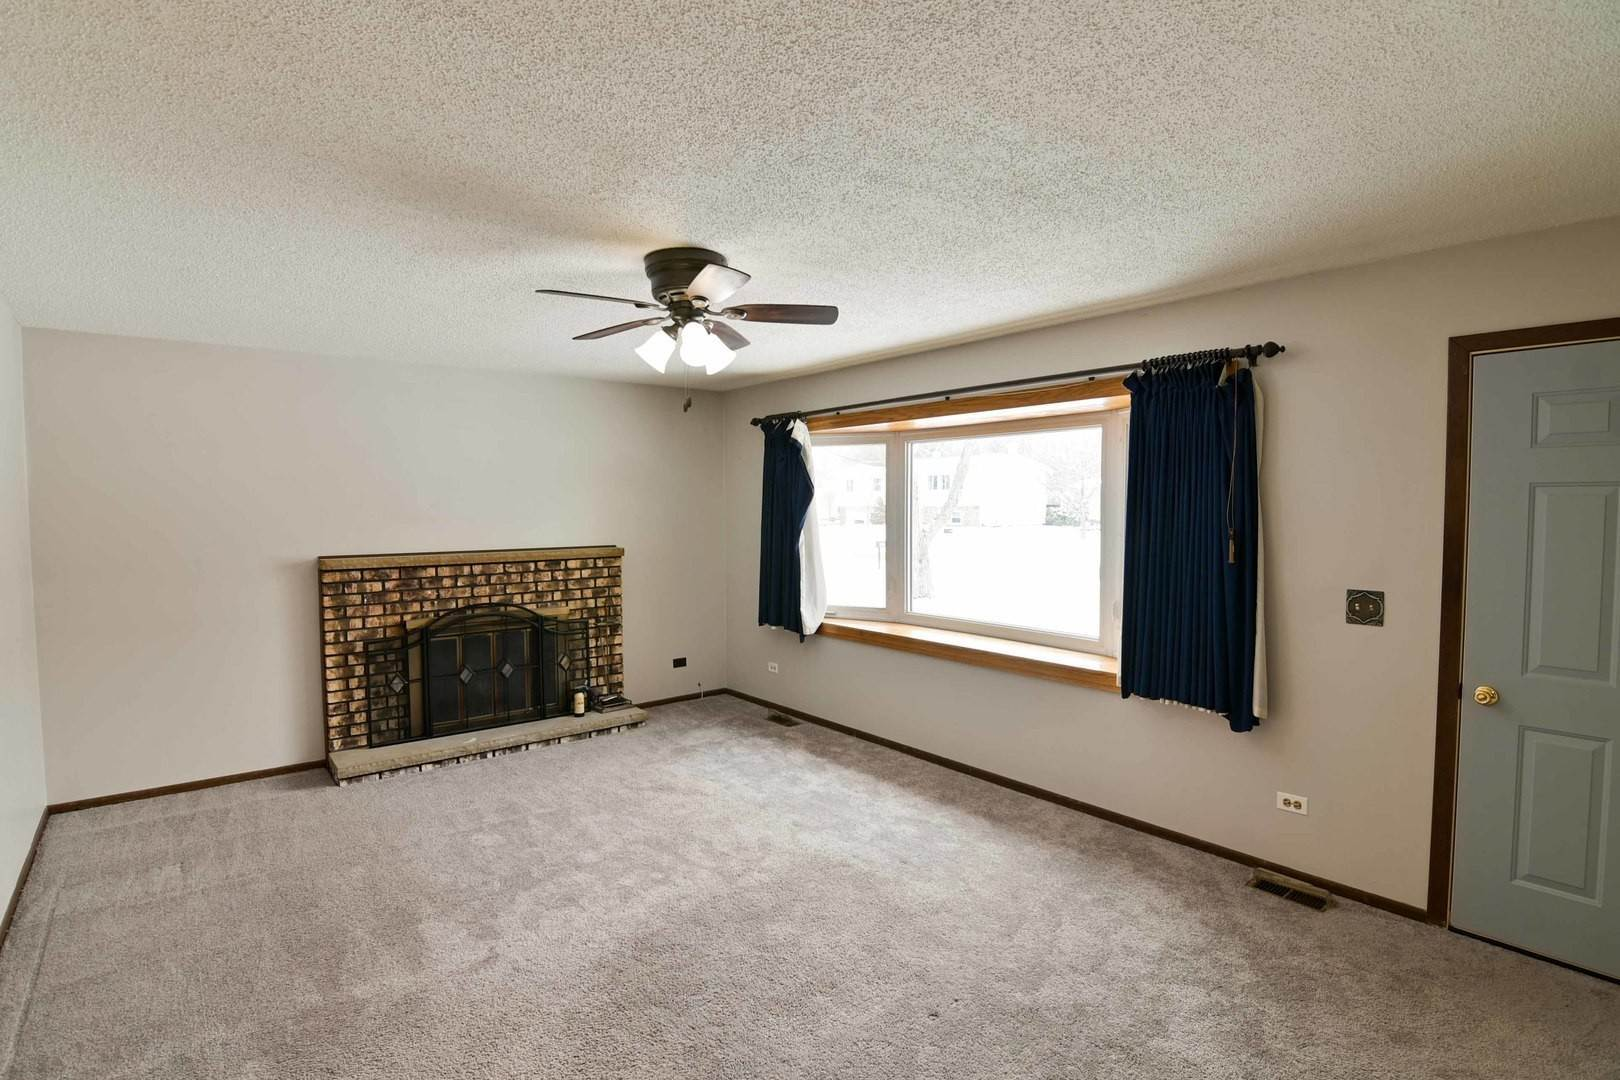 Single Family Homes for Sale at 1403 Landon Avenue Winthrop Harbor, Illinois 60096 United States